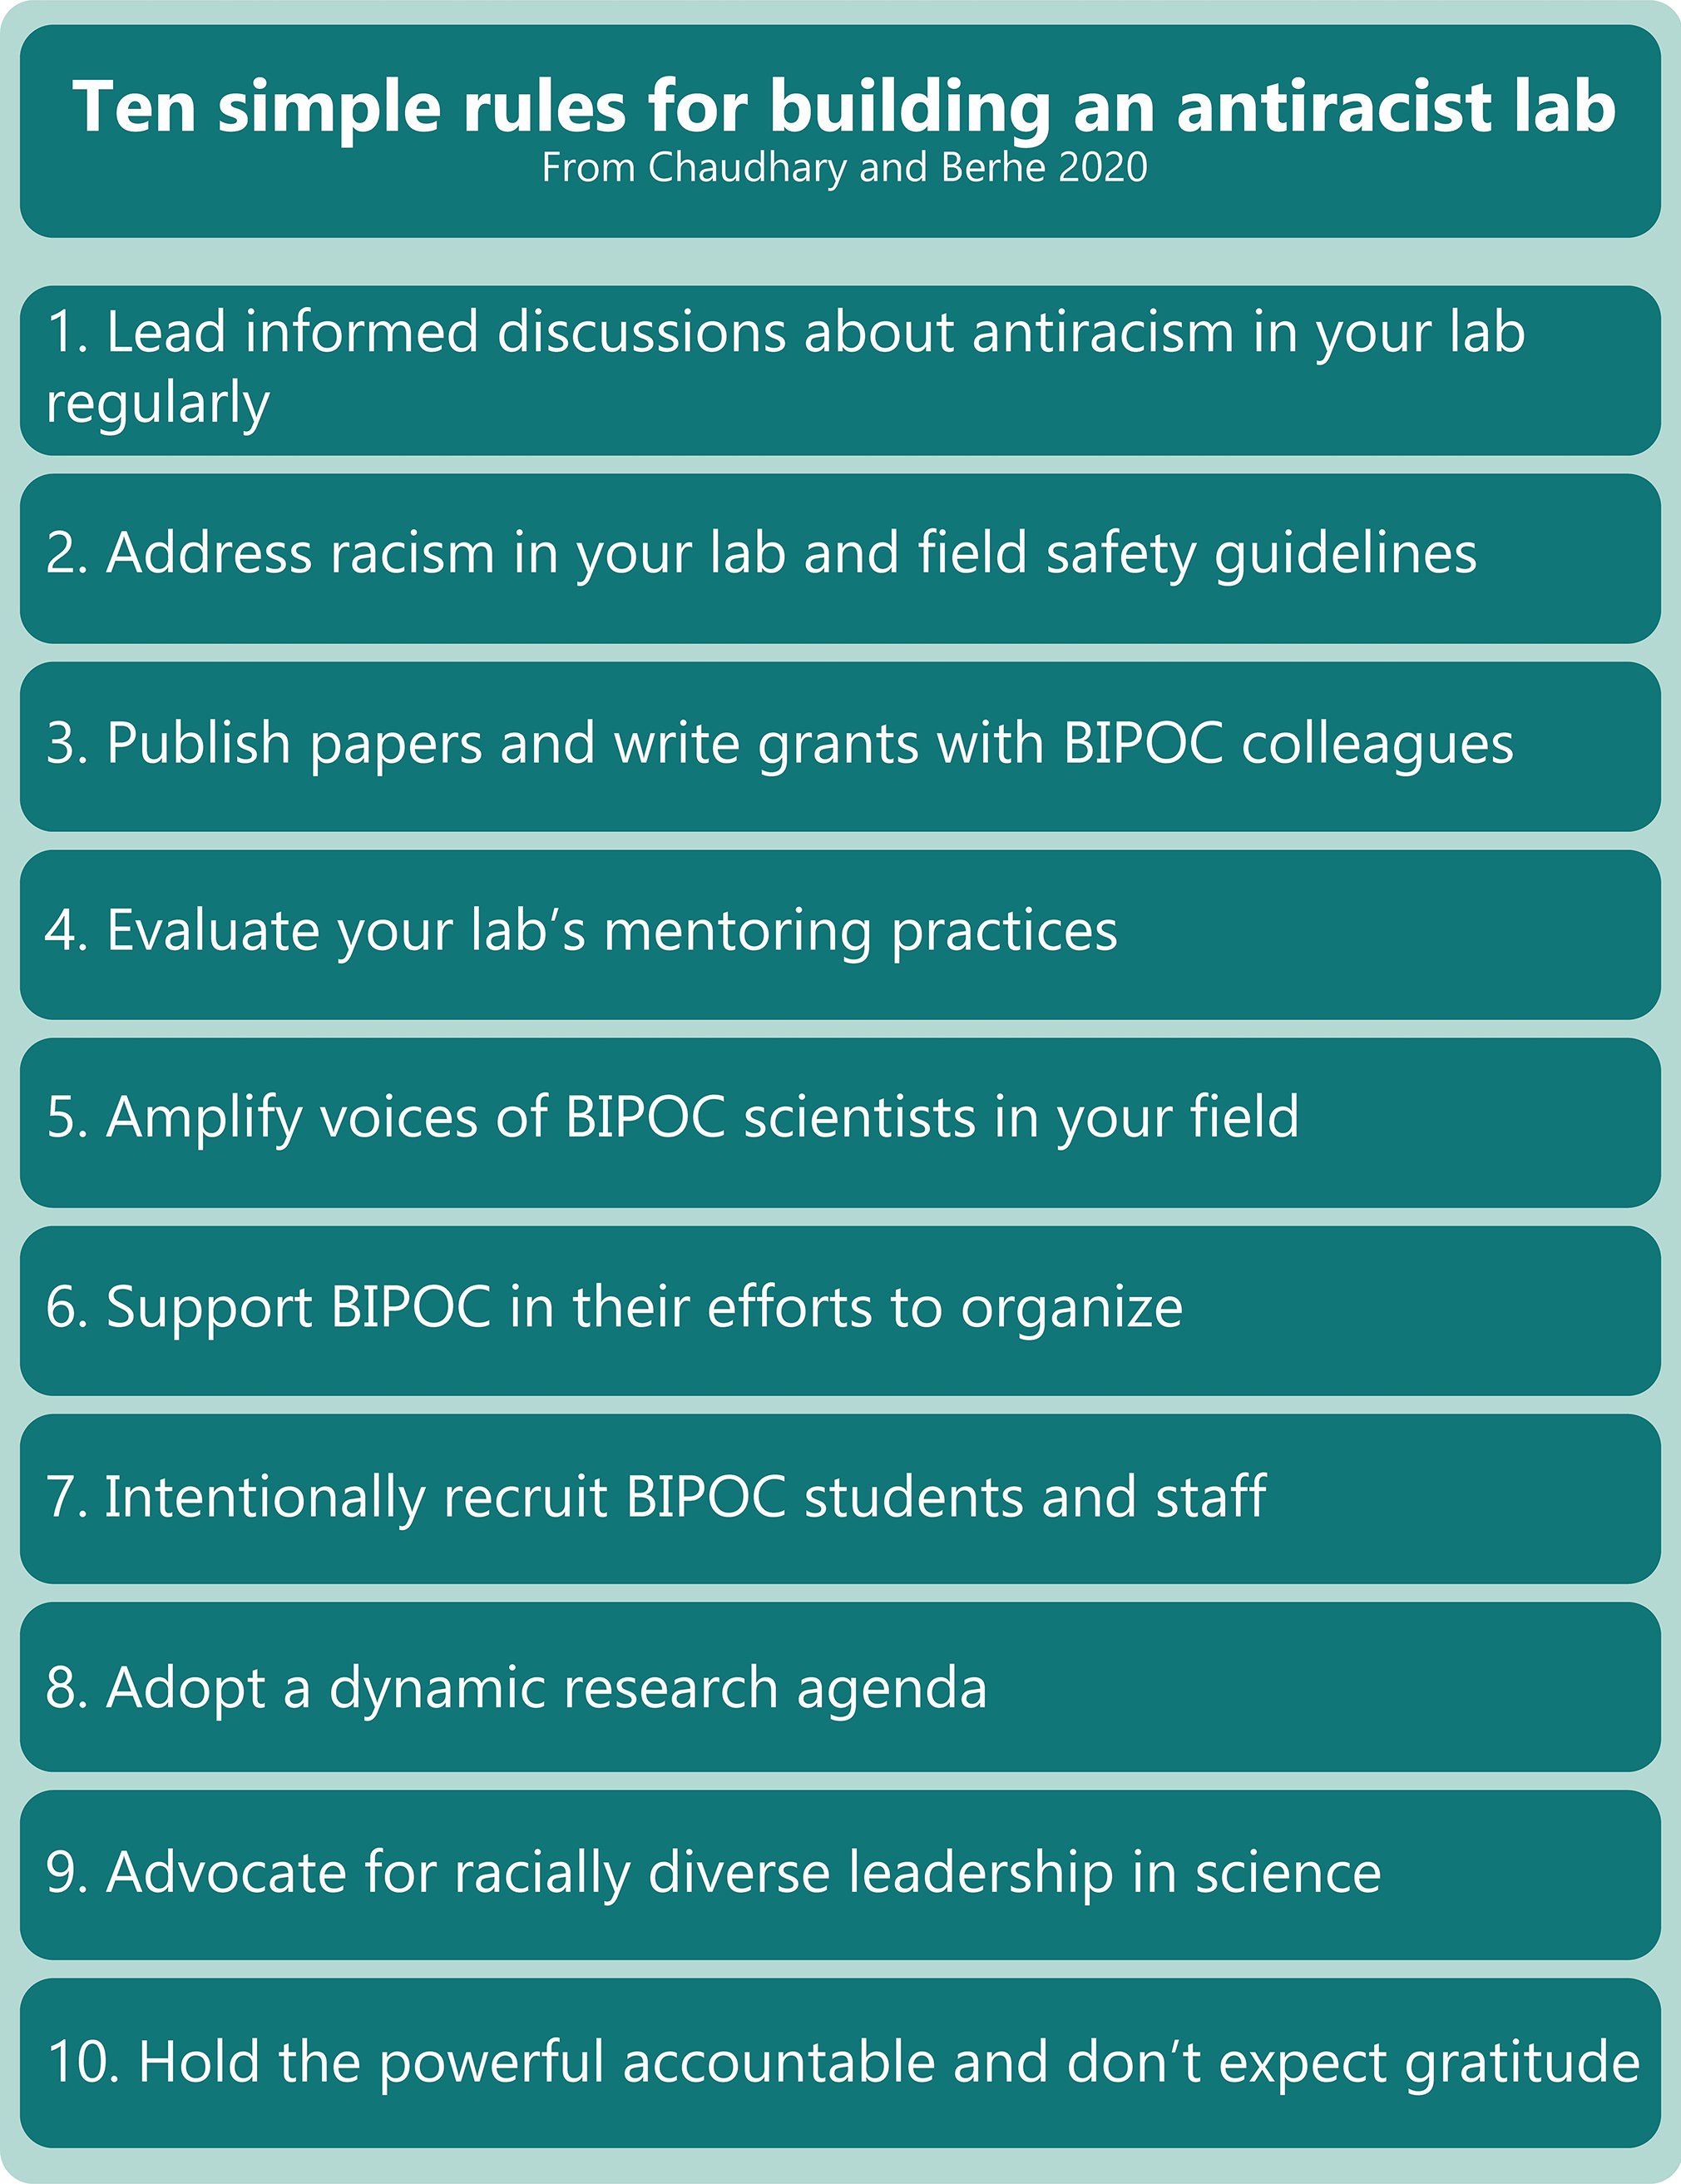 10 rules to build an antiracist lab